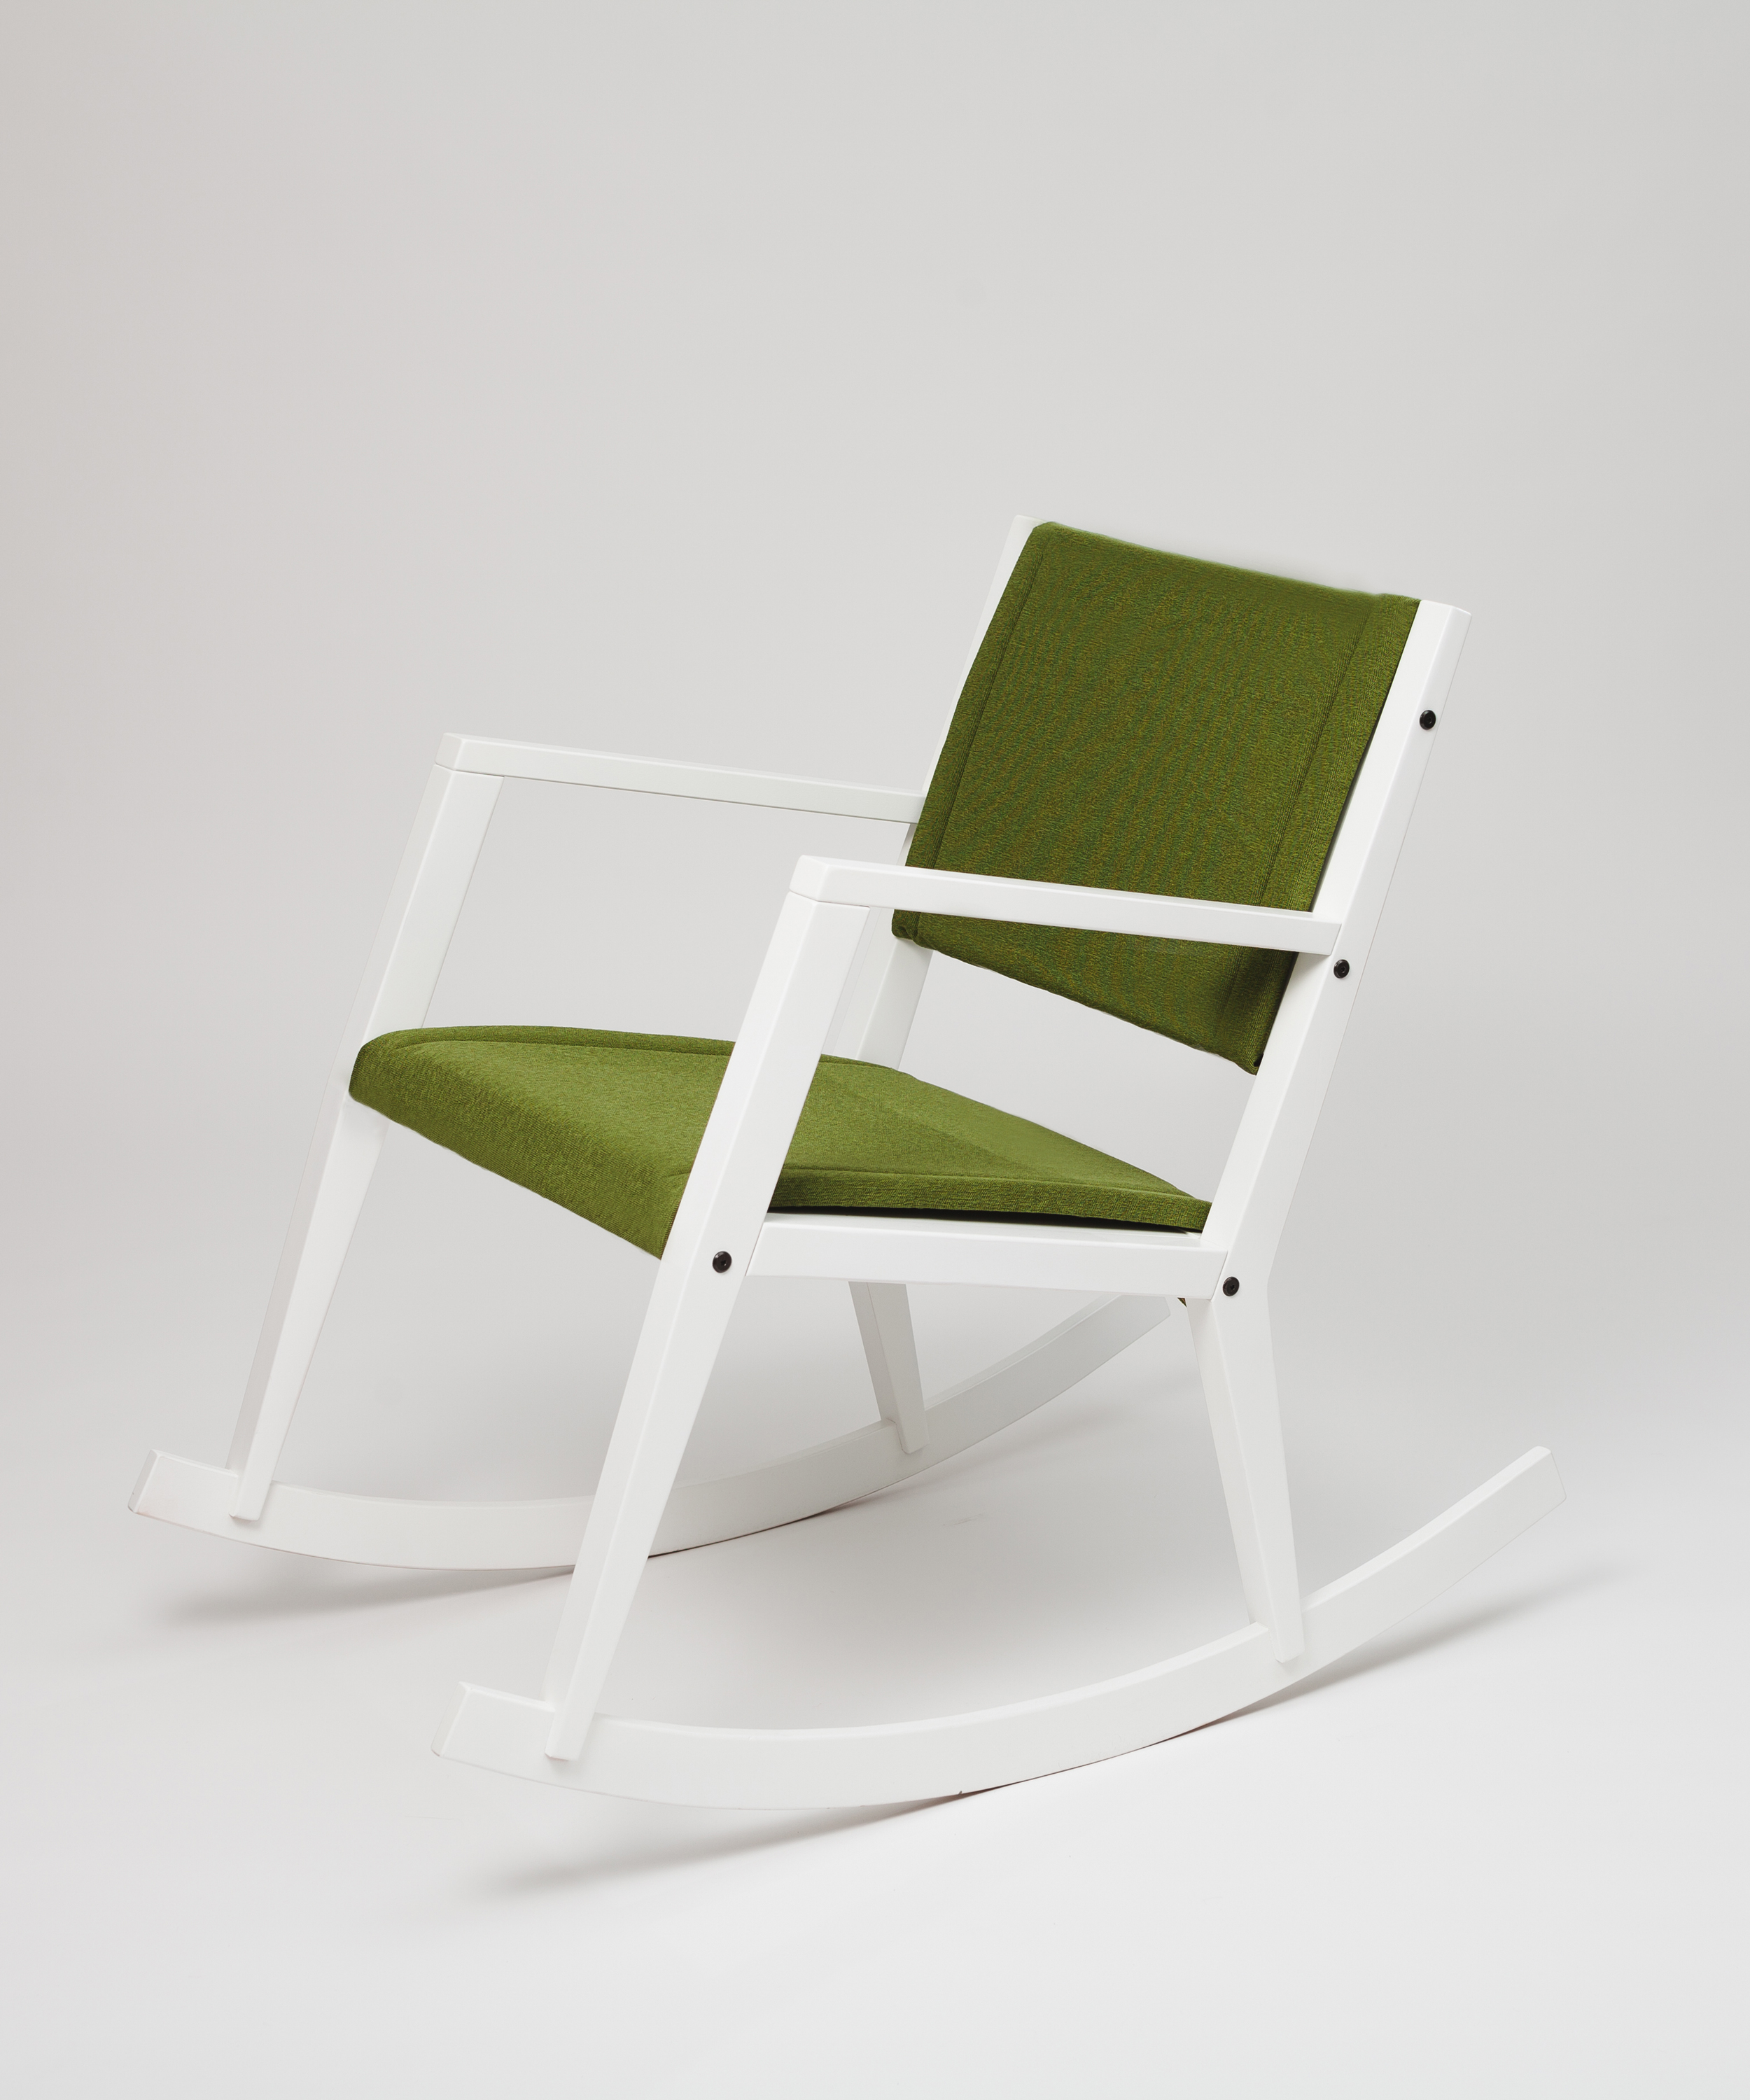 Onni rocking chair with padding – Design from Scandinavia